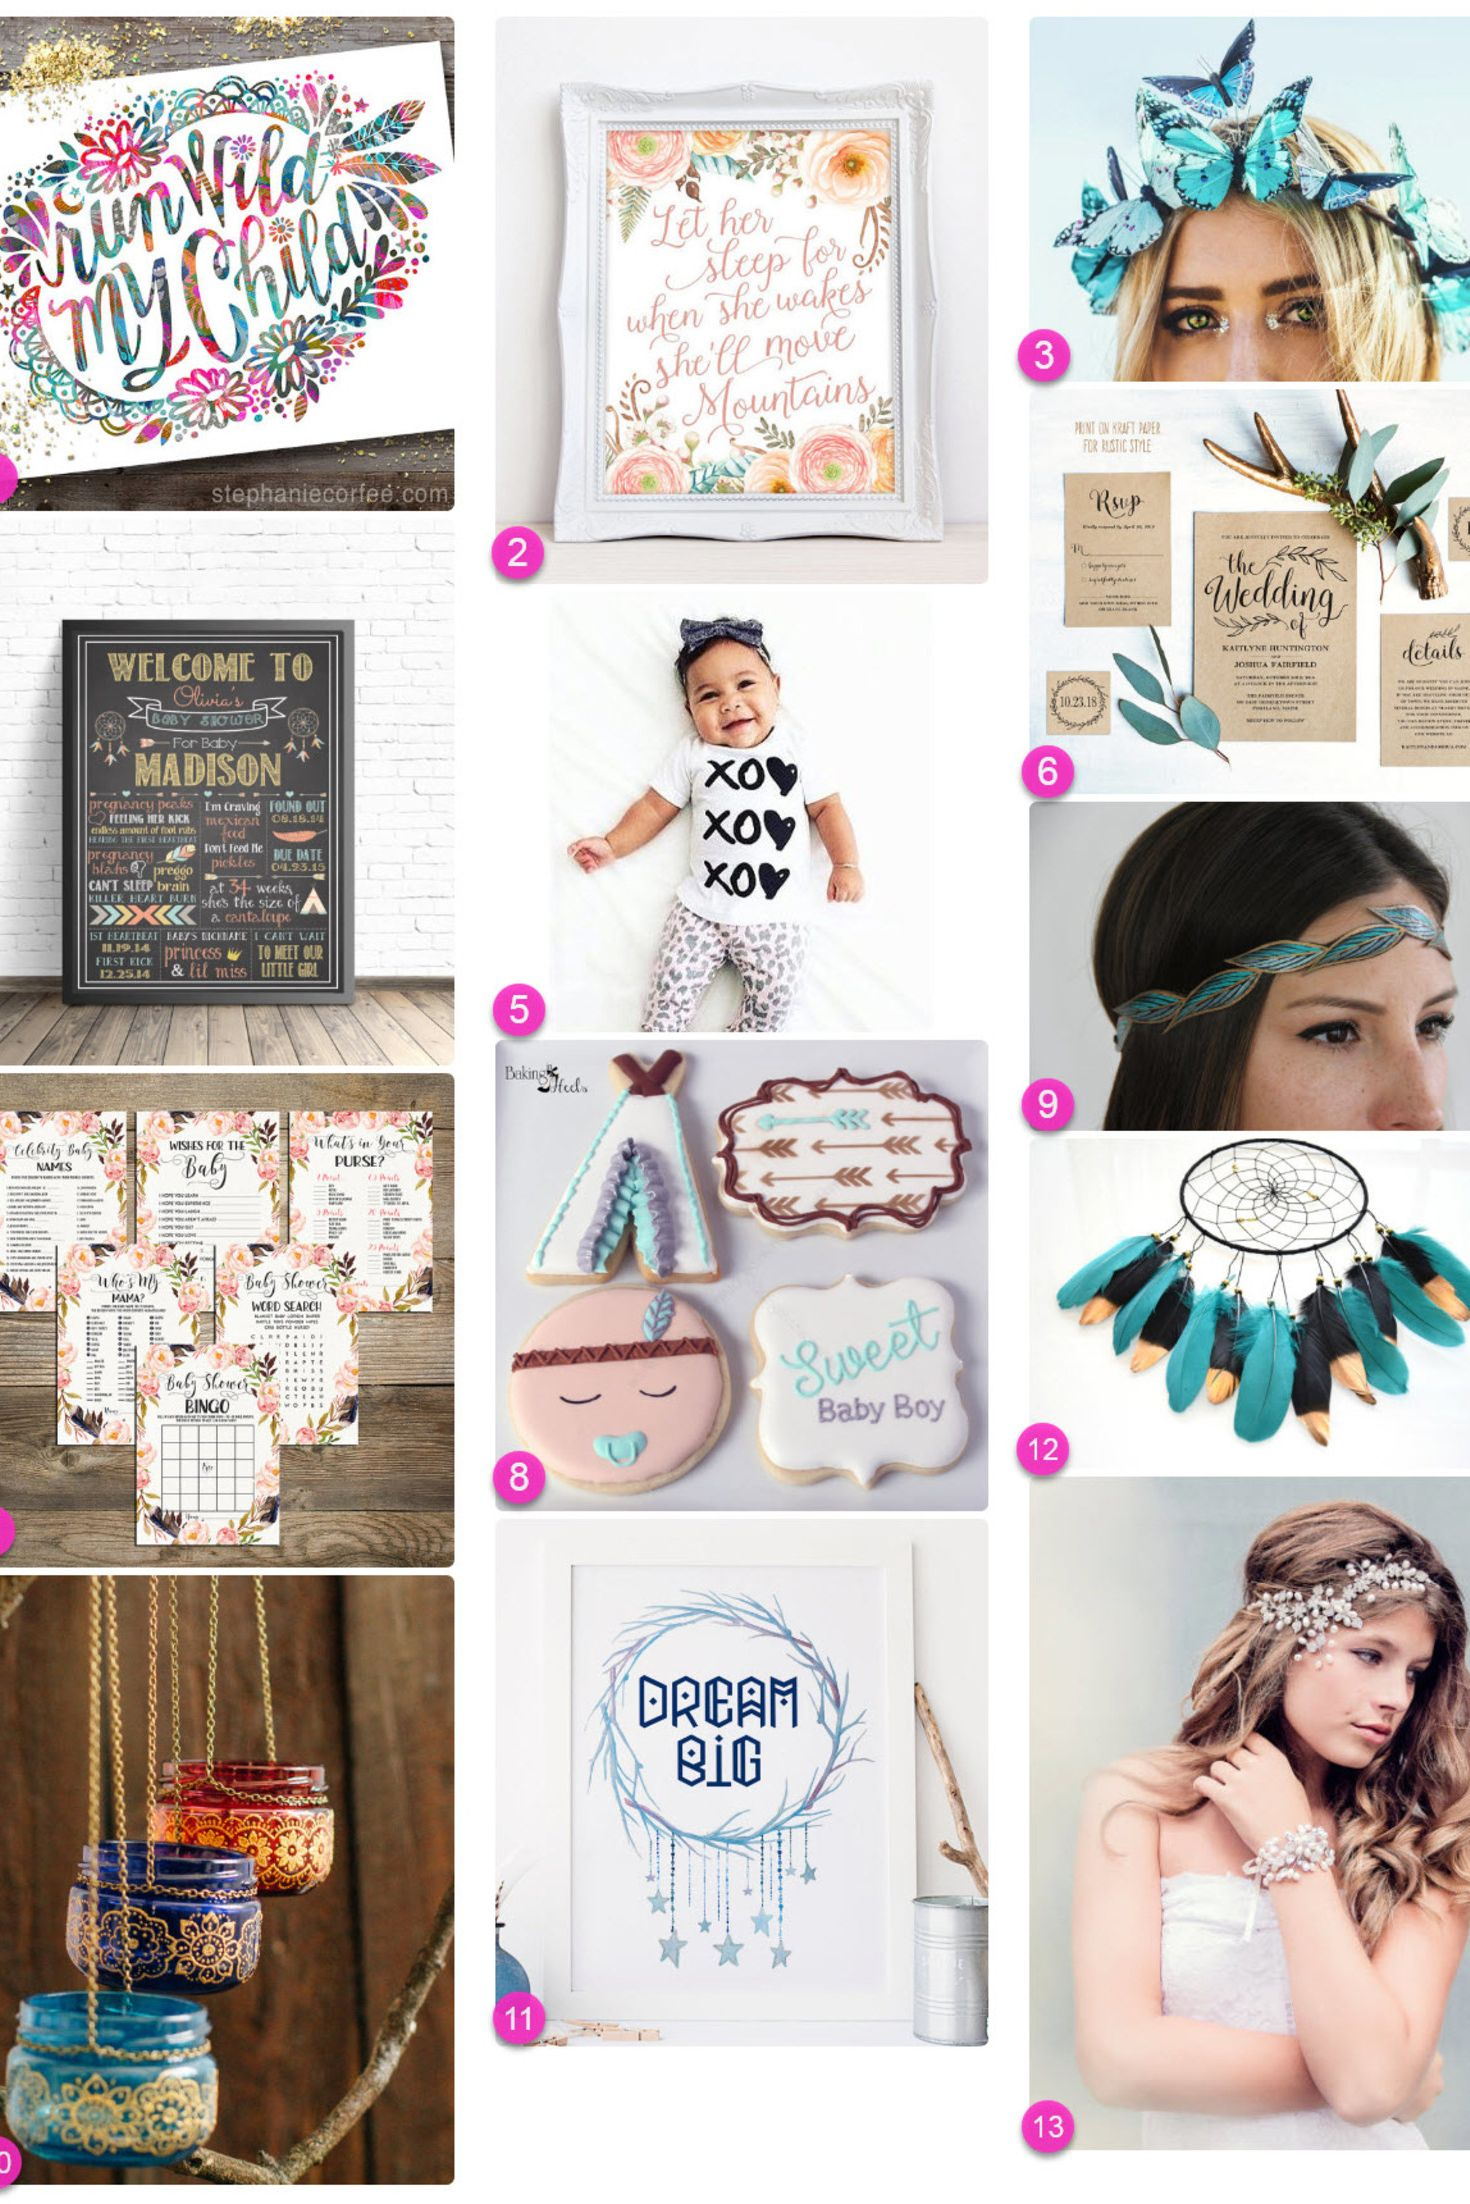 Perfect Wedding & Baby Boho Party Ideas... |  handpicked Boho party and Bohemian theme collection.  The first Bohemian guide was filled with mainly Bohemian Boho wedding cards and also Boho bohemian theme decor found on Etsy. There was so much gorgeous boho inspired creatives found also at Zazzle, that I made it into two jam packed Boho Bohemian themed party guides.